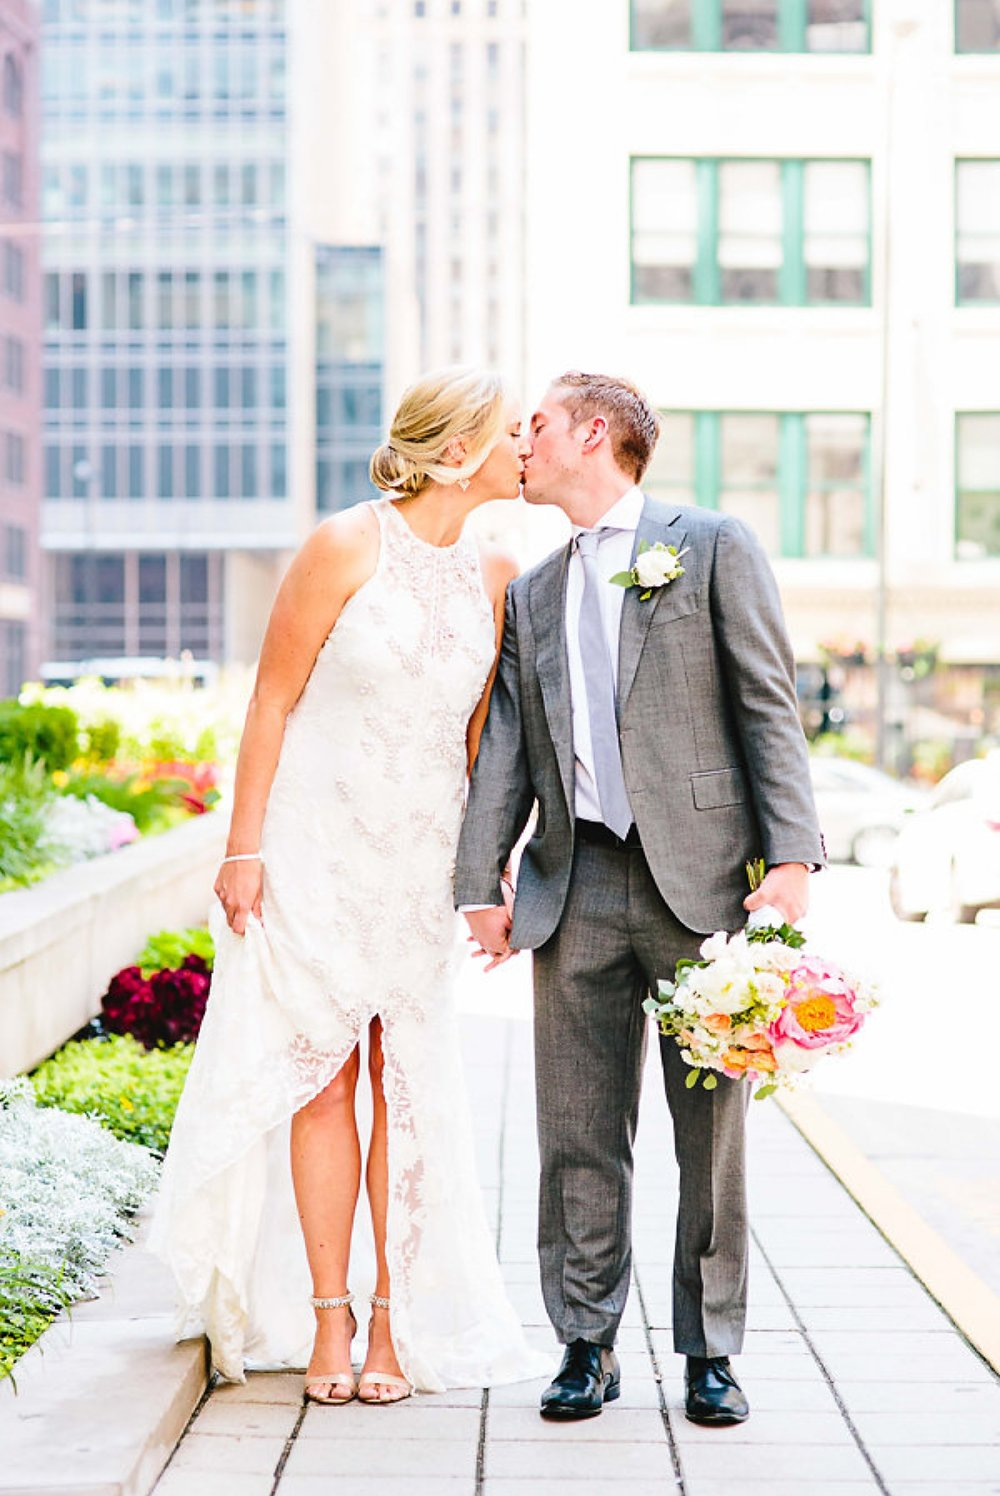 chicago-fine-art-wedding-photography-hrebic6